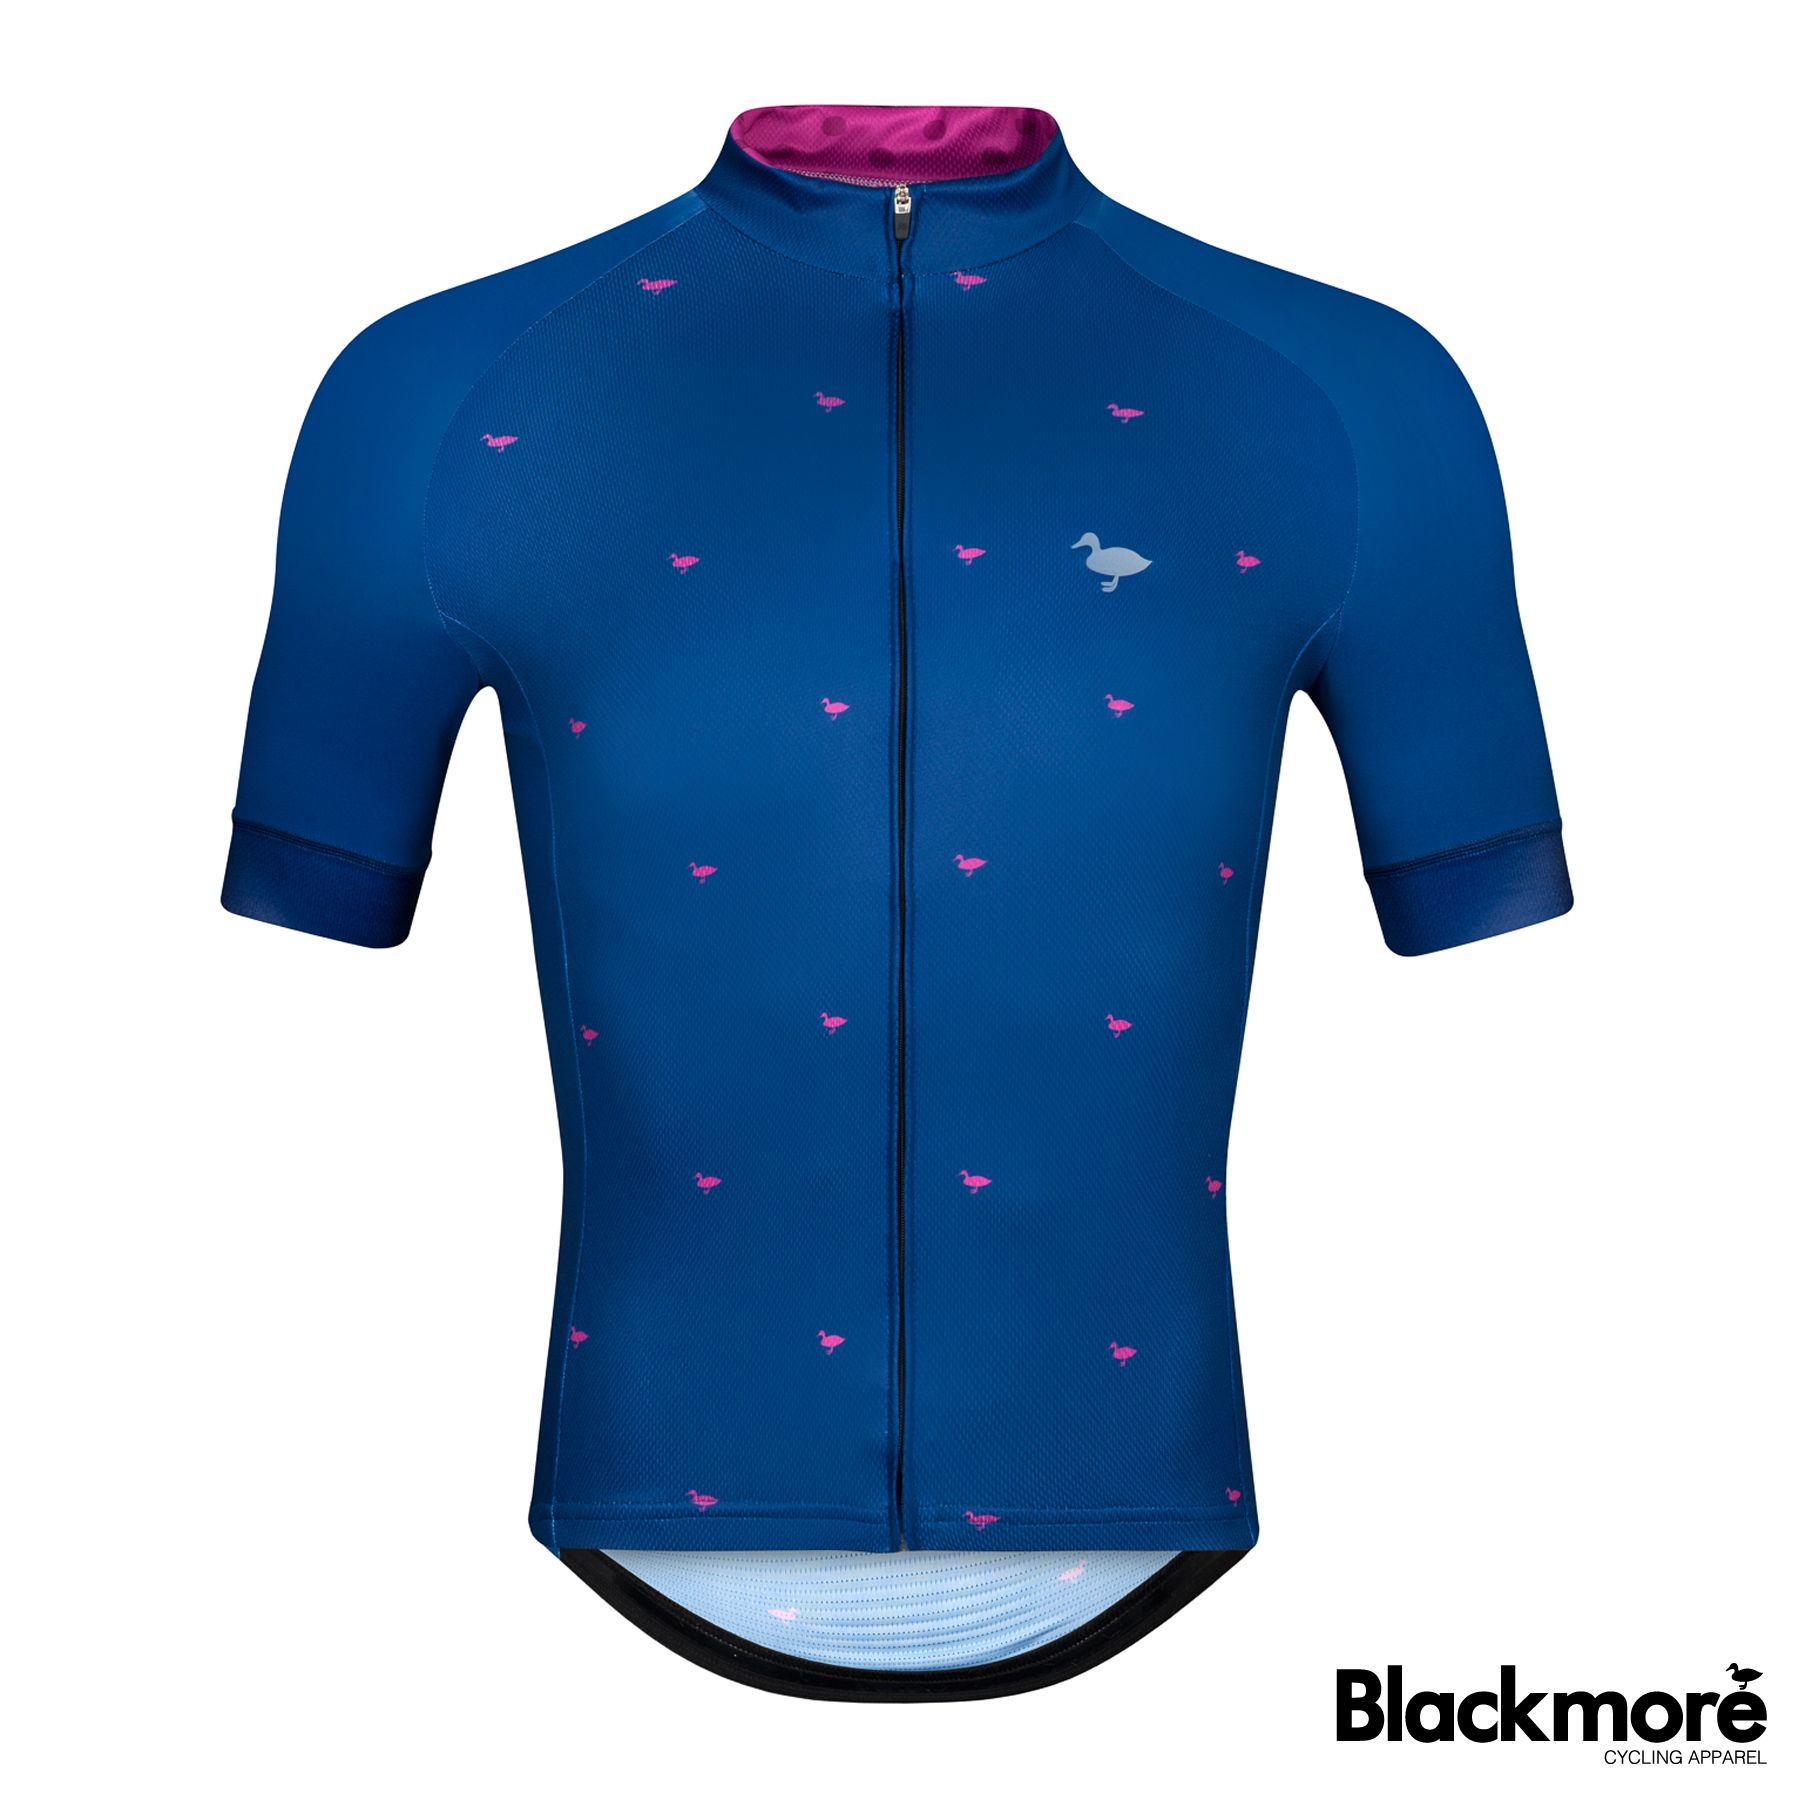 0de05576e Our Flamingo jerseys. Available in both mens and ladies cut ...